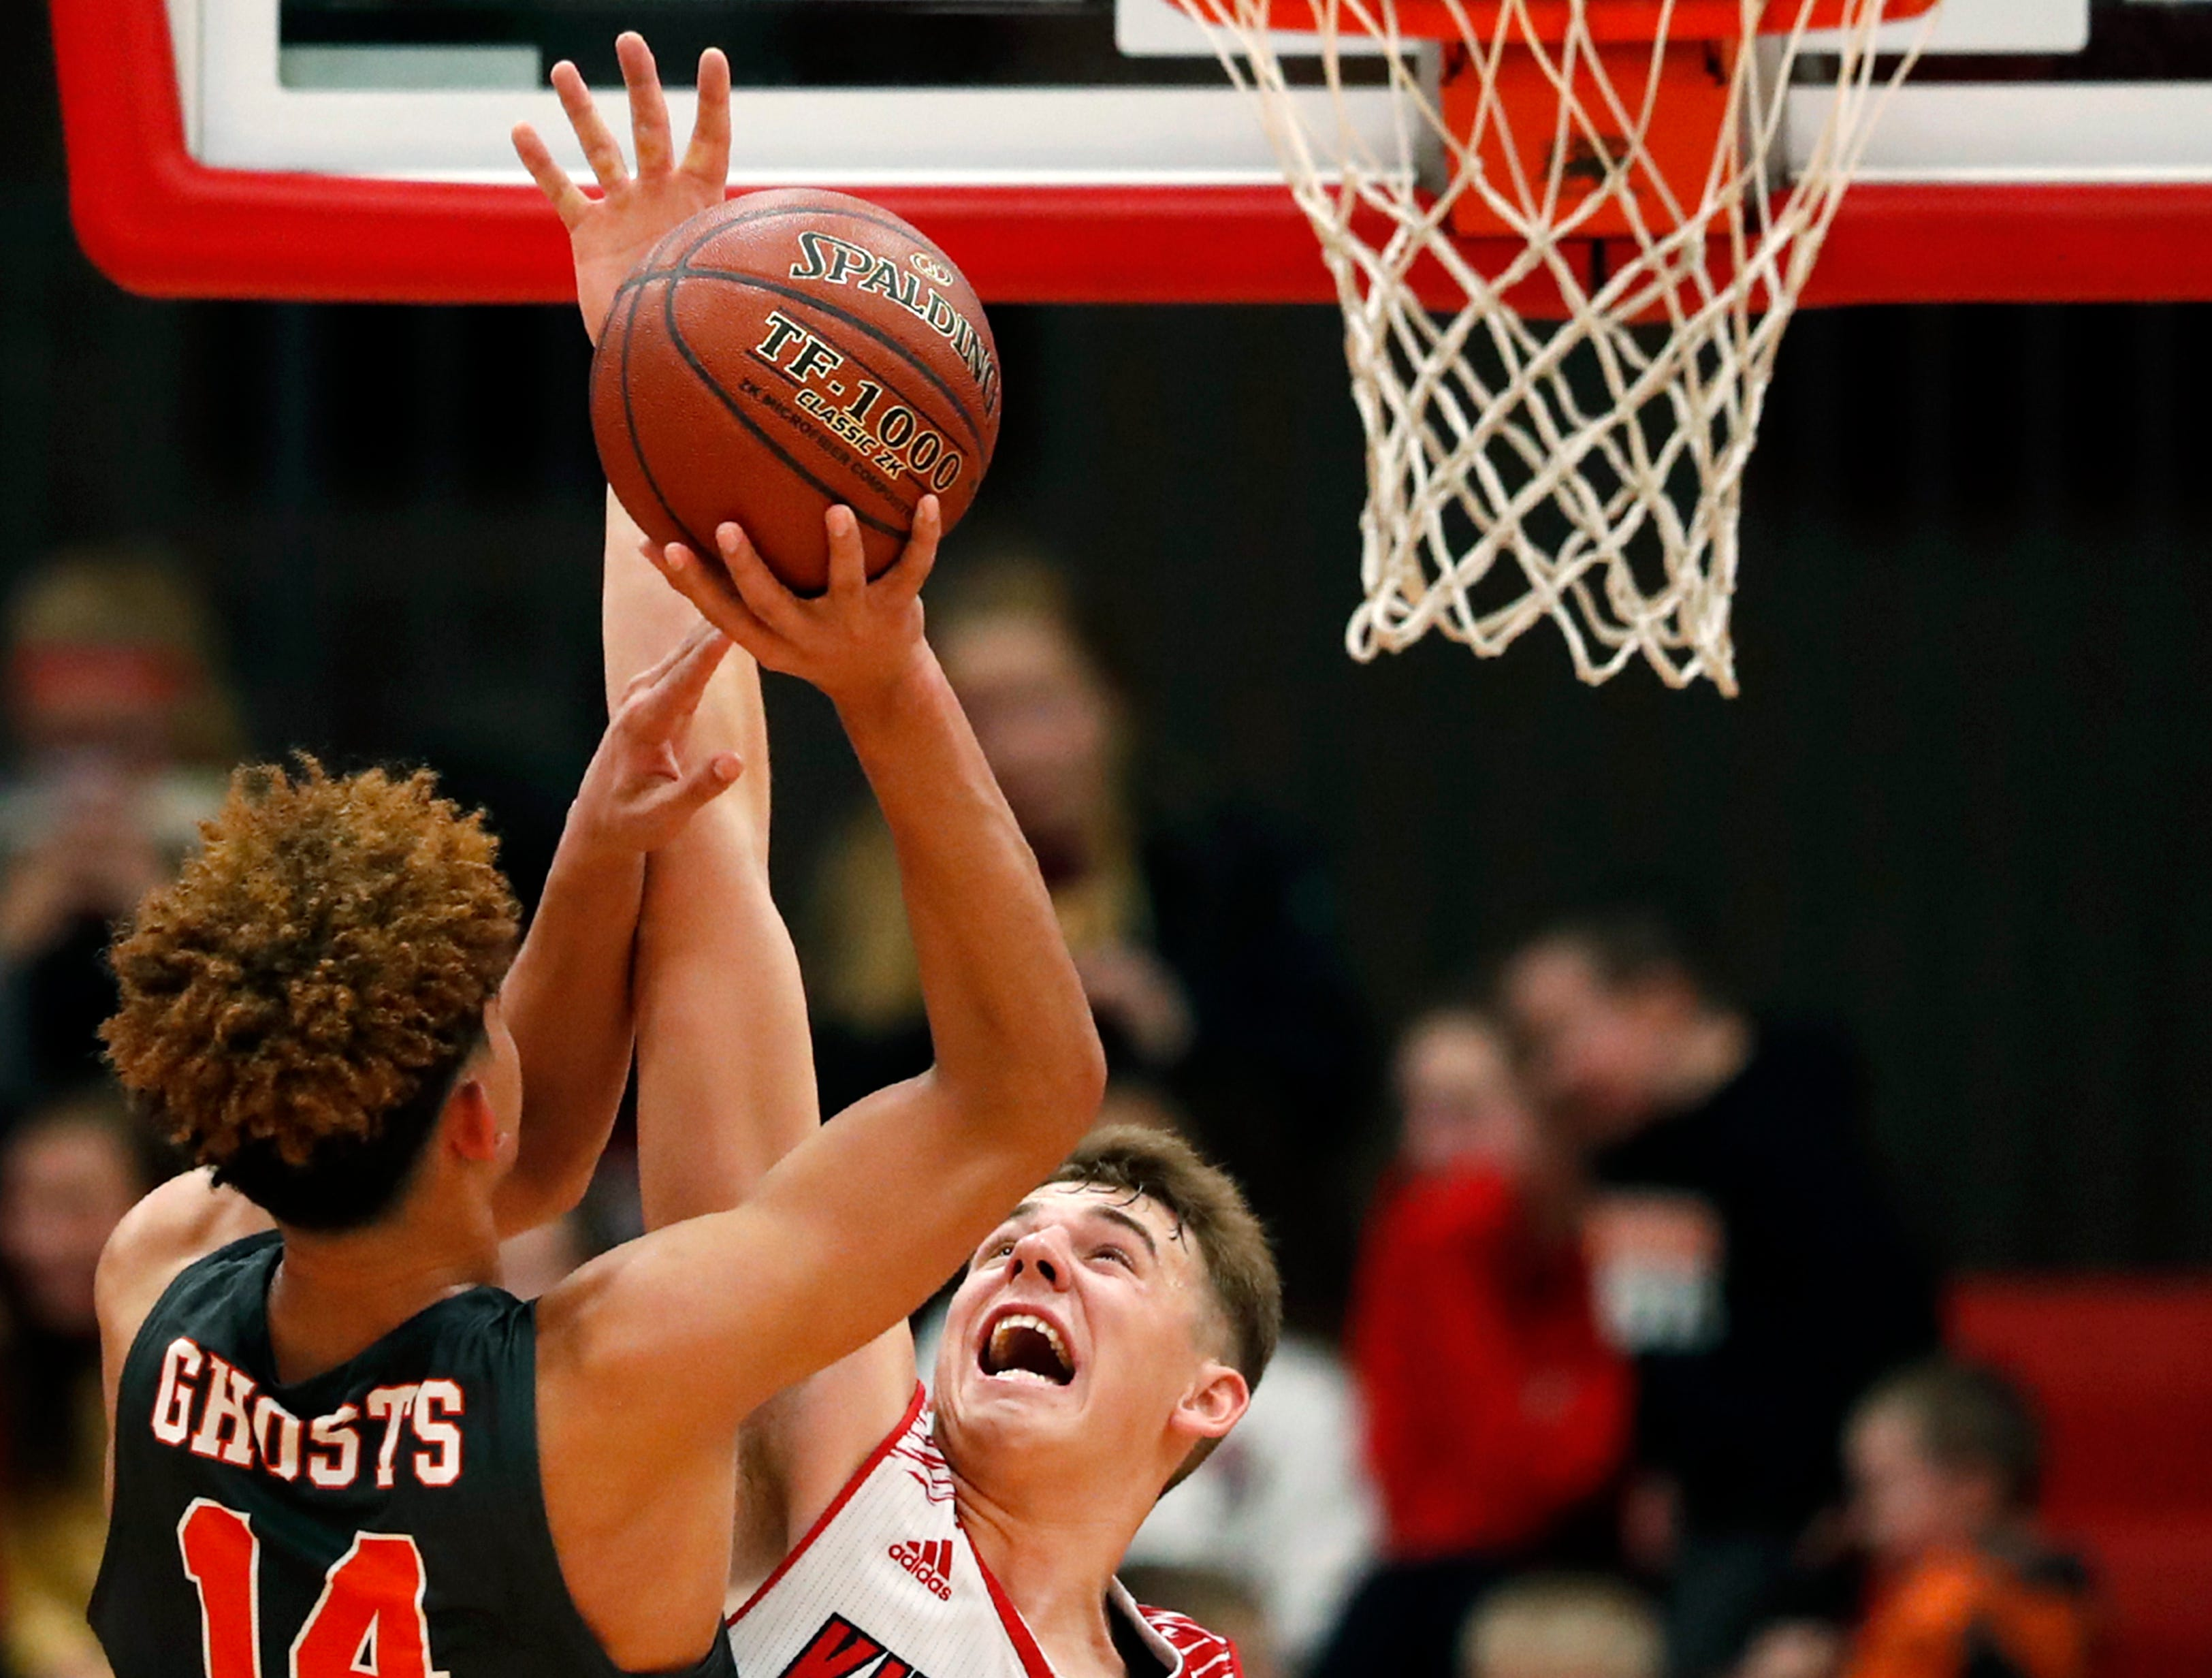 Kaukauna High School's Brayden Ivory tries to get a shot past Kimberly High School's Reed Miller Friday, Dec. 7, 2018, in Kimberly, Wis. Kimberly High School defeated Kaukauna High School 85-64.